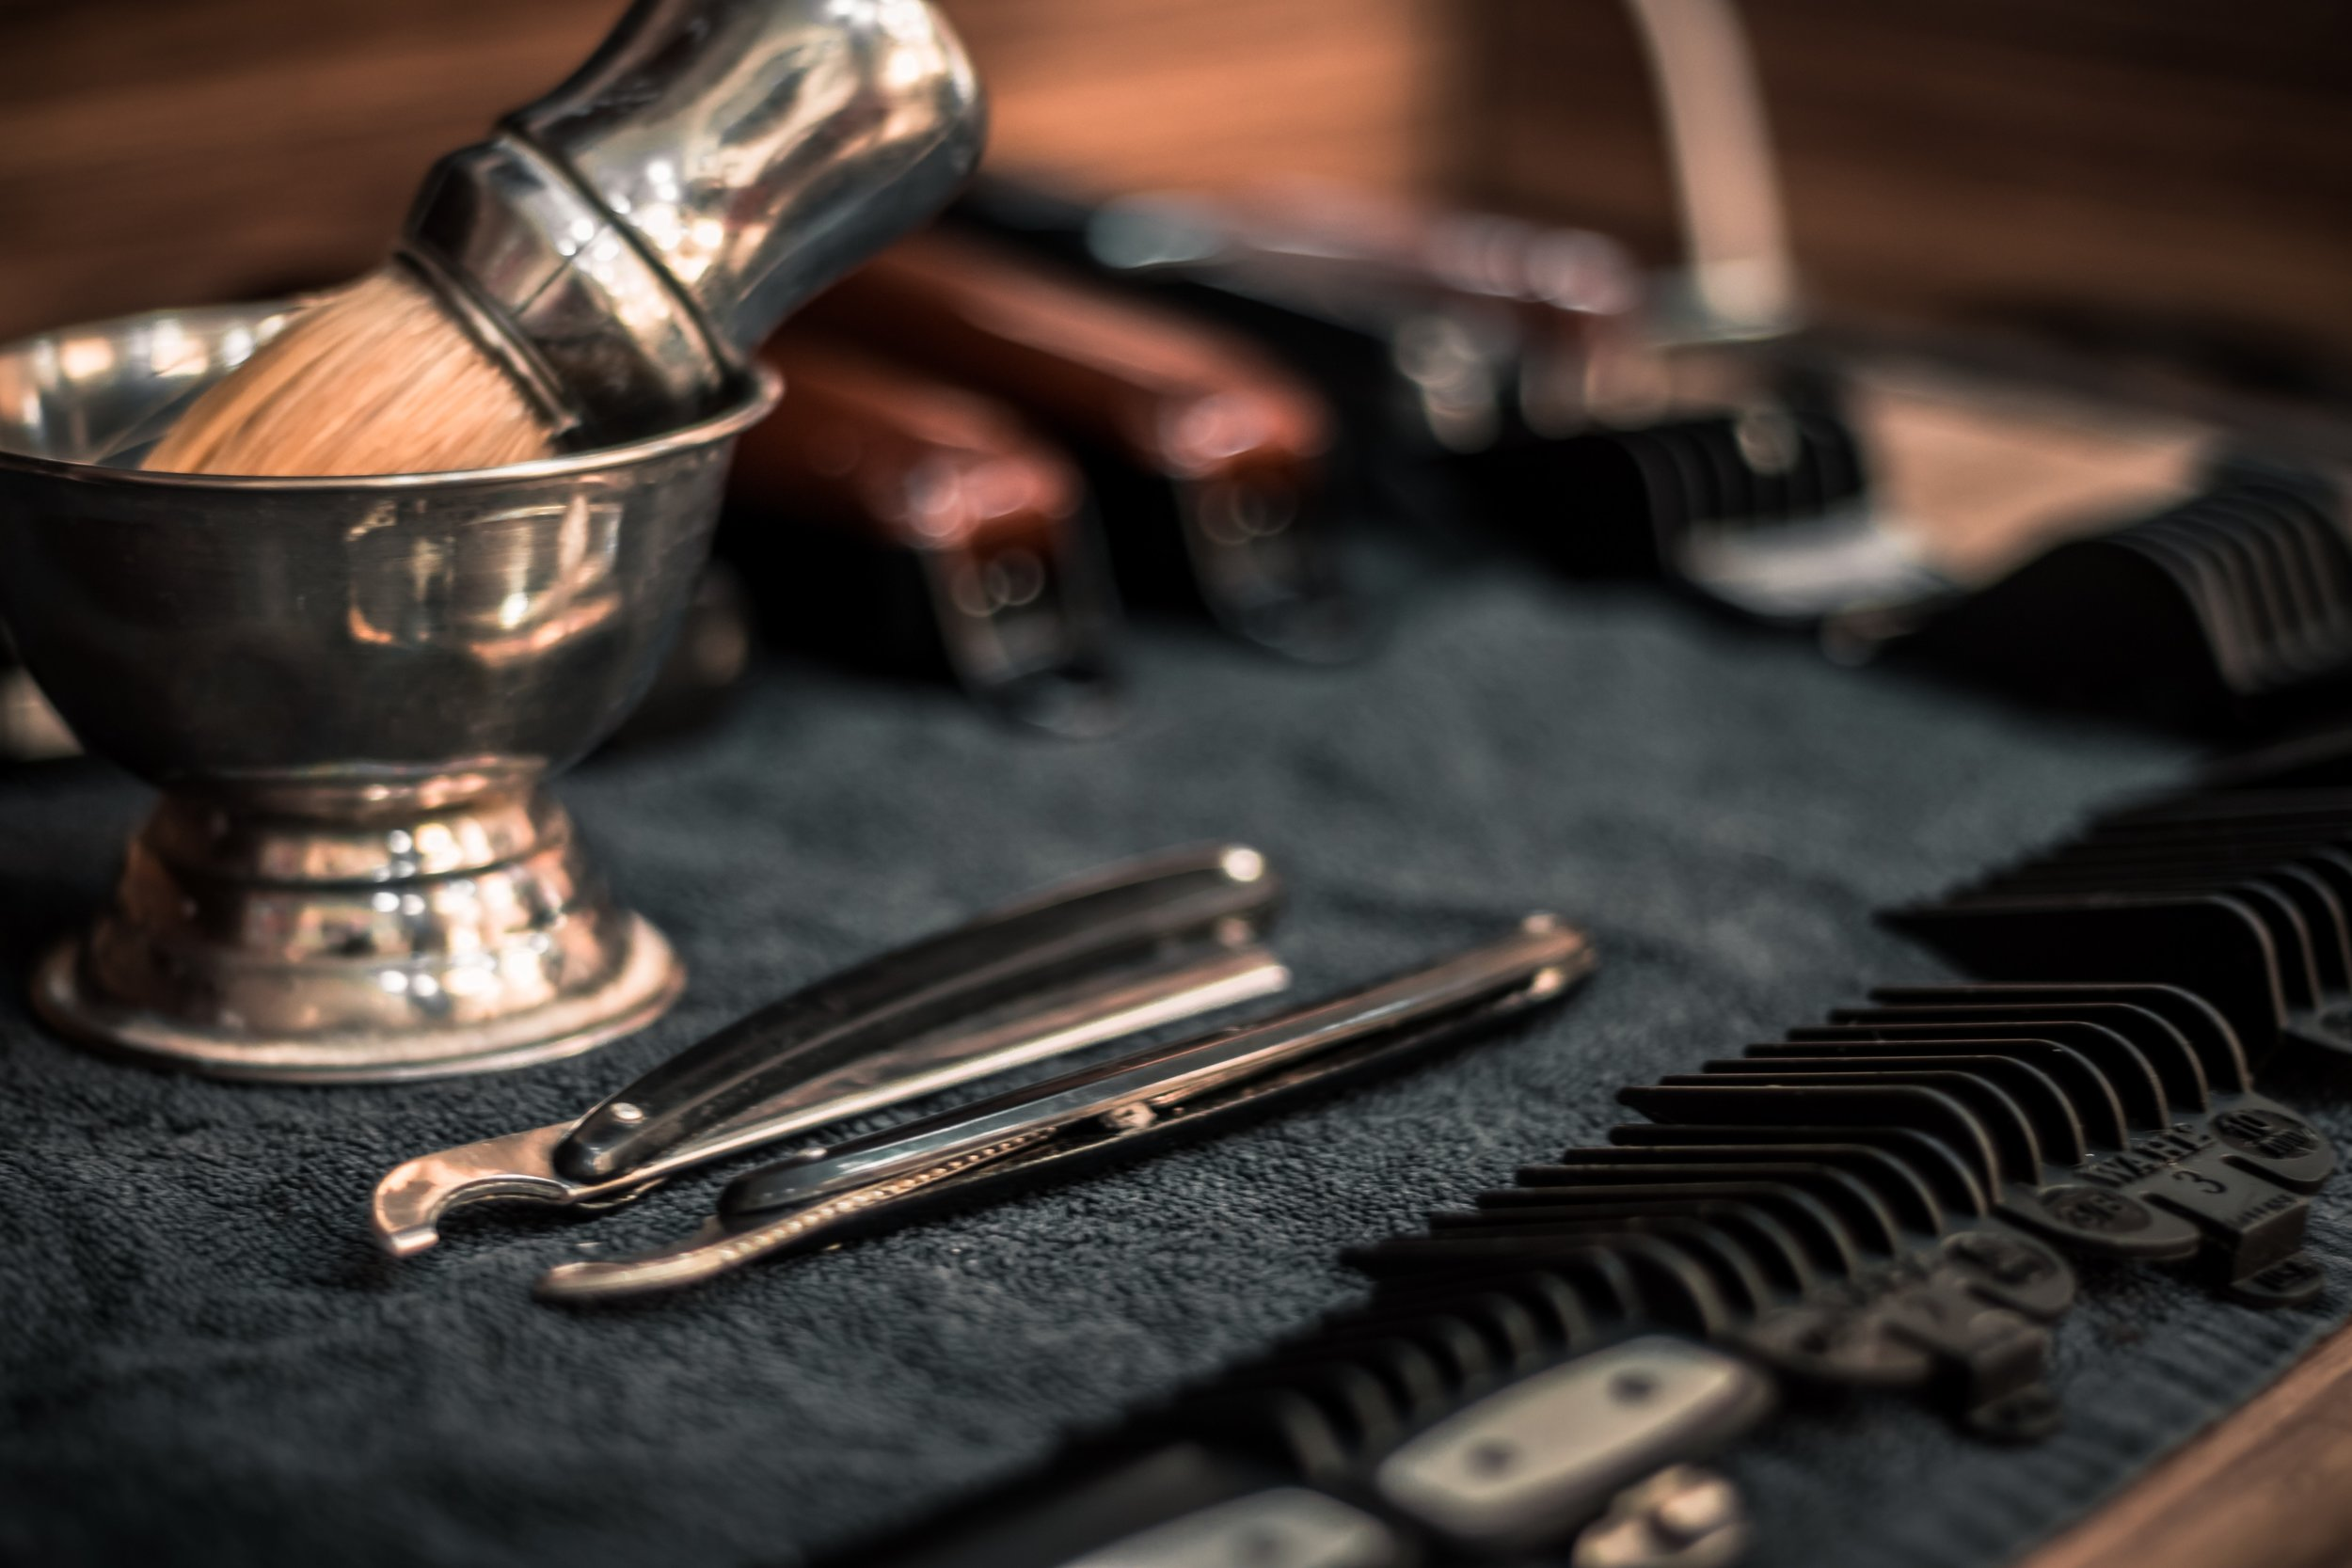 Stock image of 'Salon shavers' by Nick Demou from  Pexels